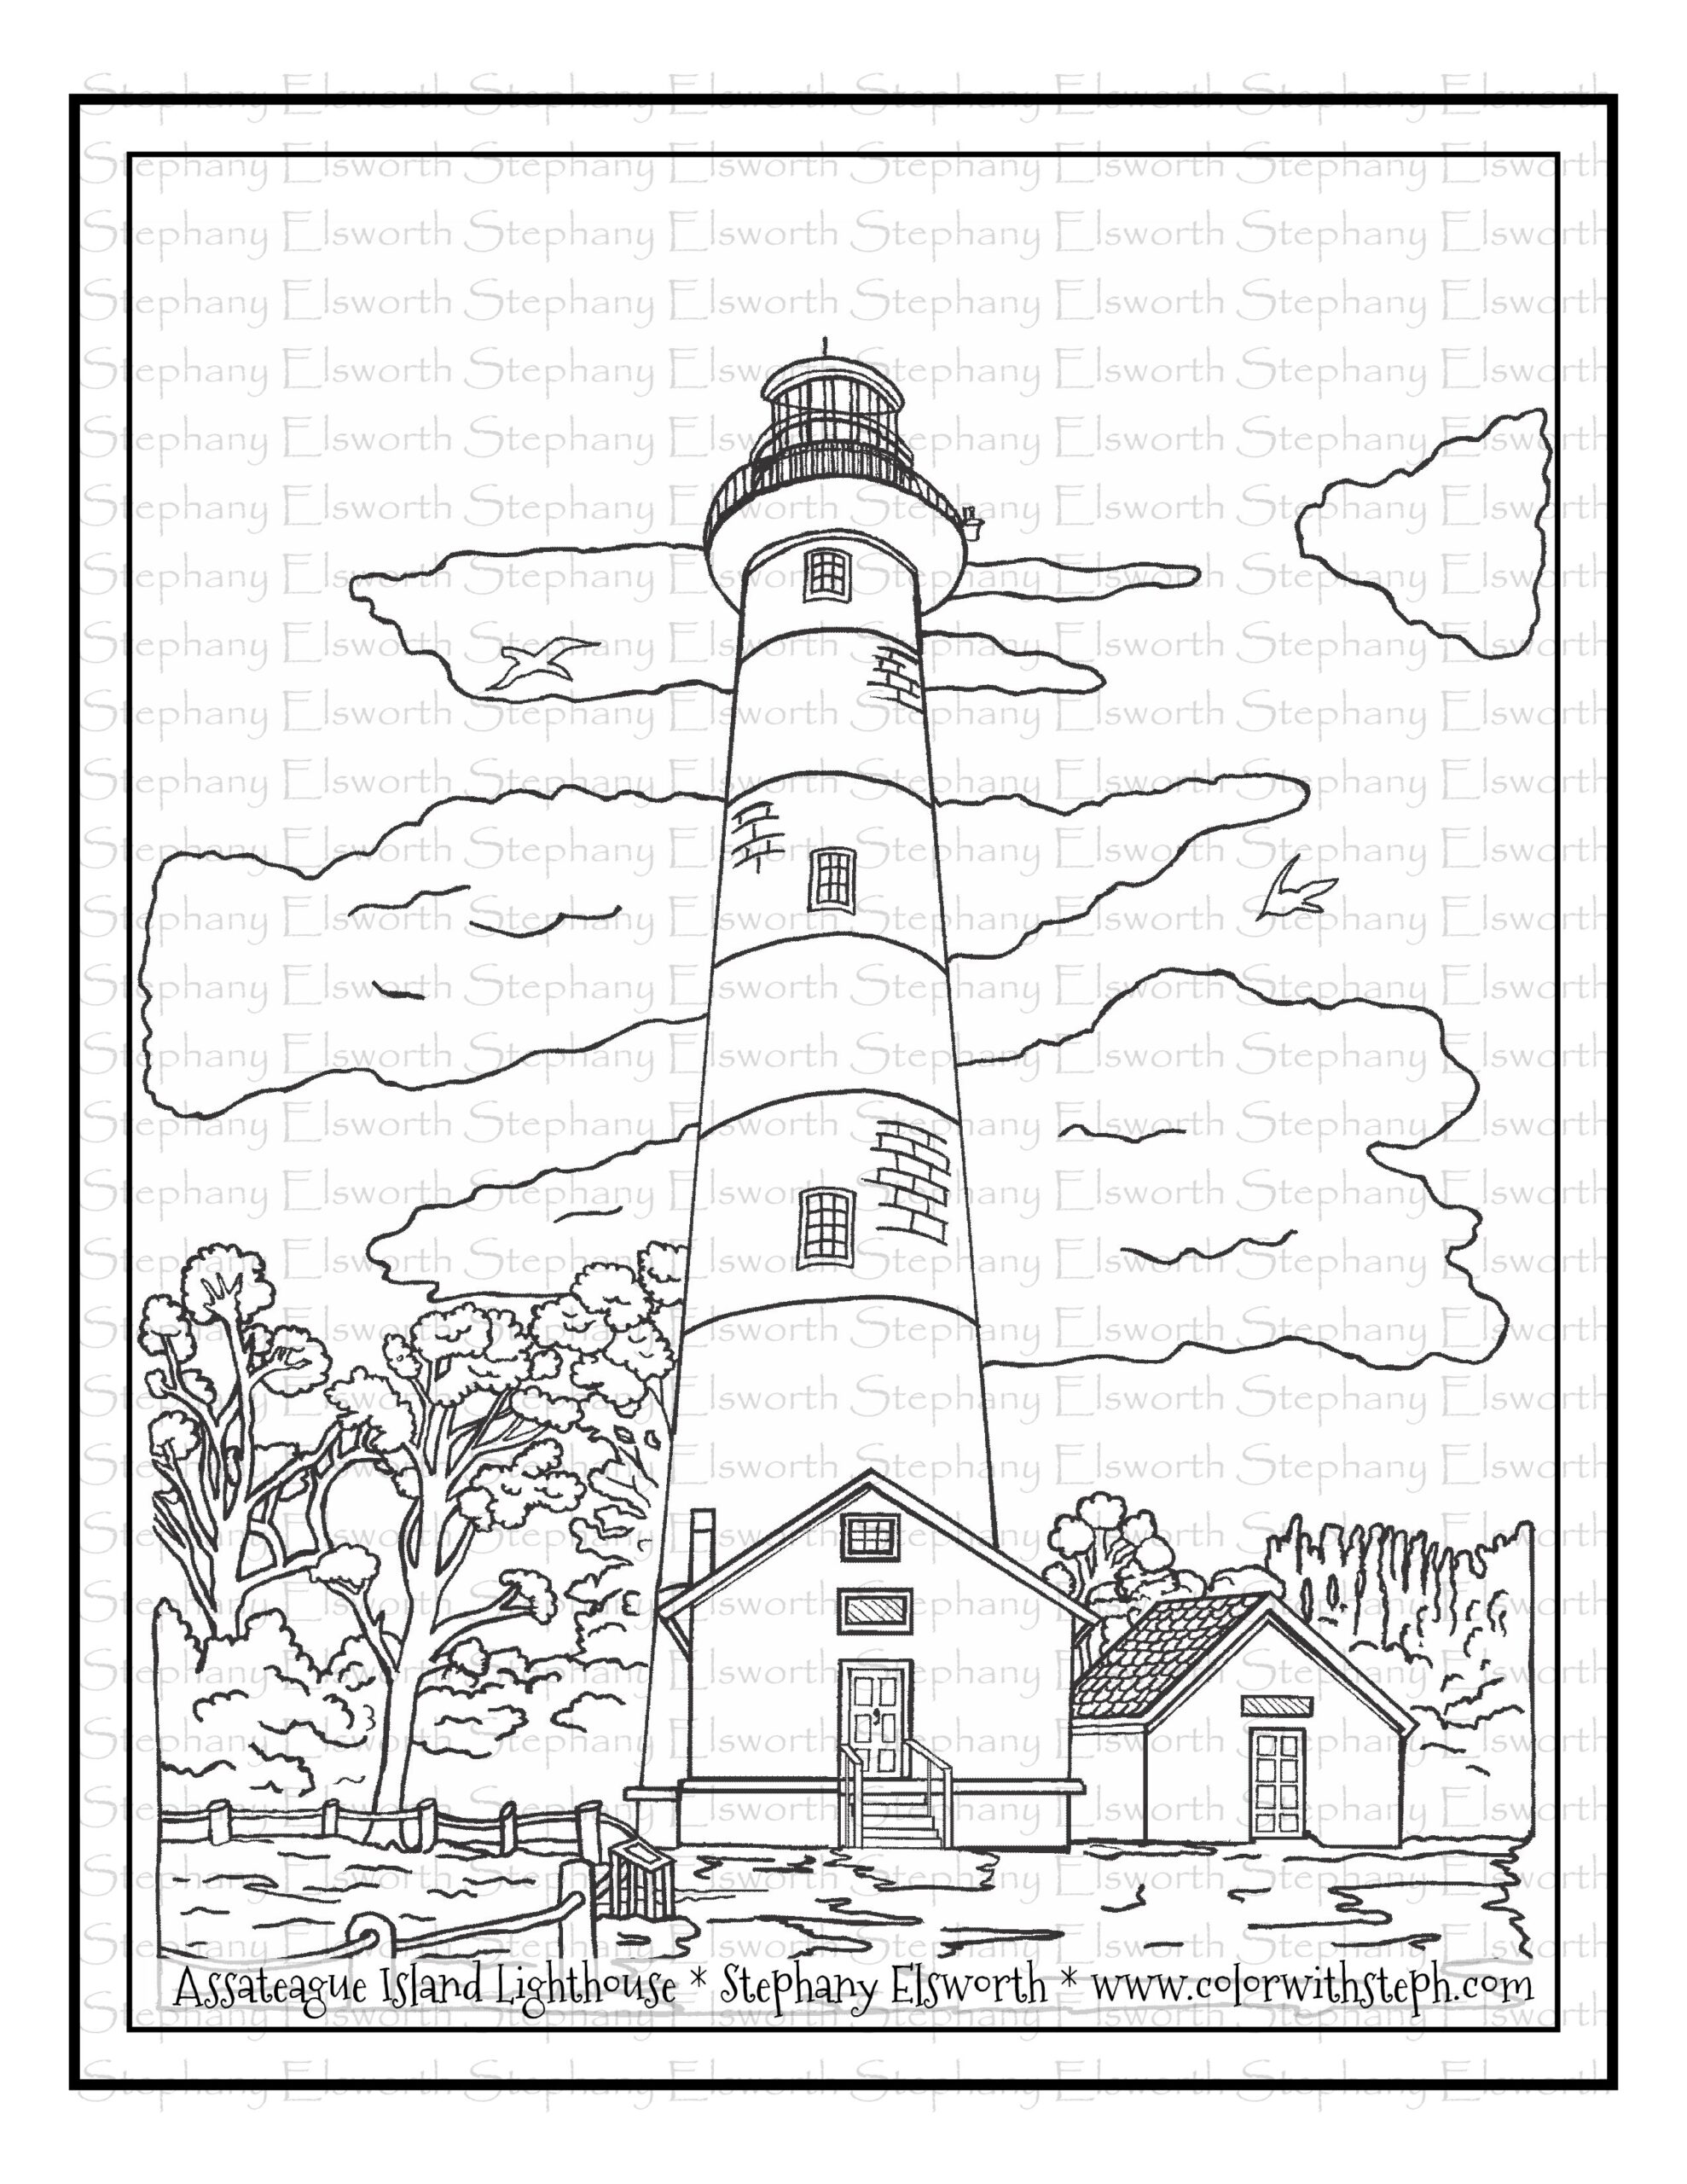 assateague lighthouse free coloring color with steph wm washable fabric markers kid coloring pages Lighthouse Coloring Page